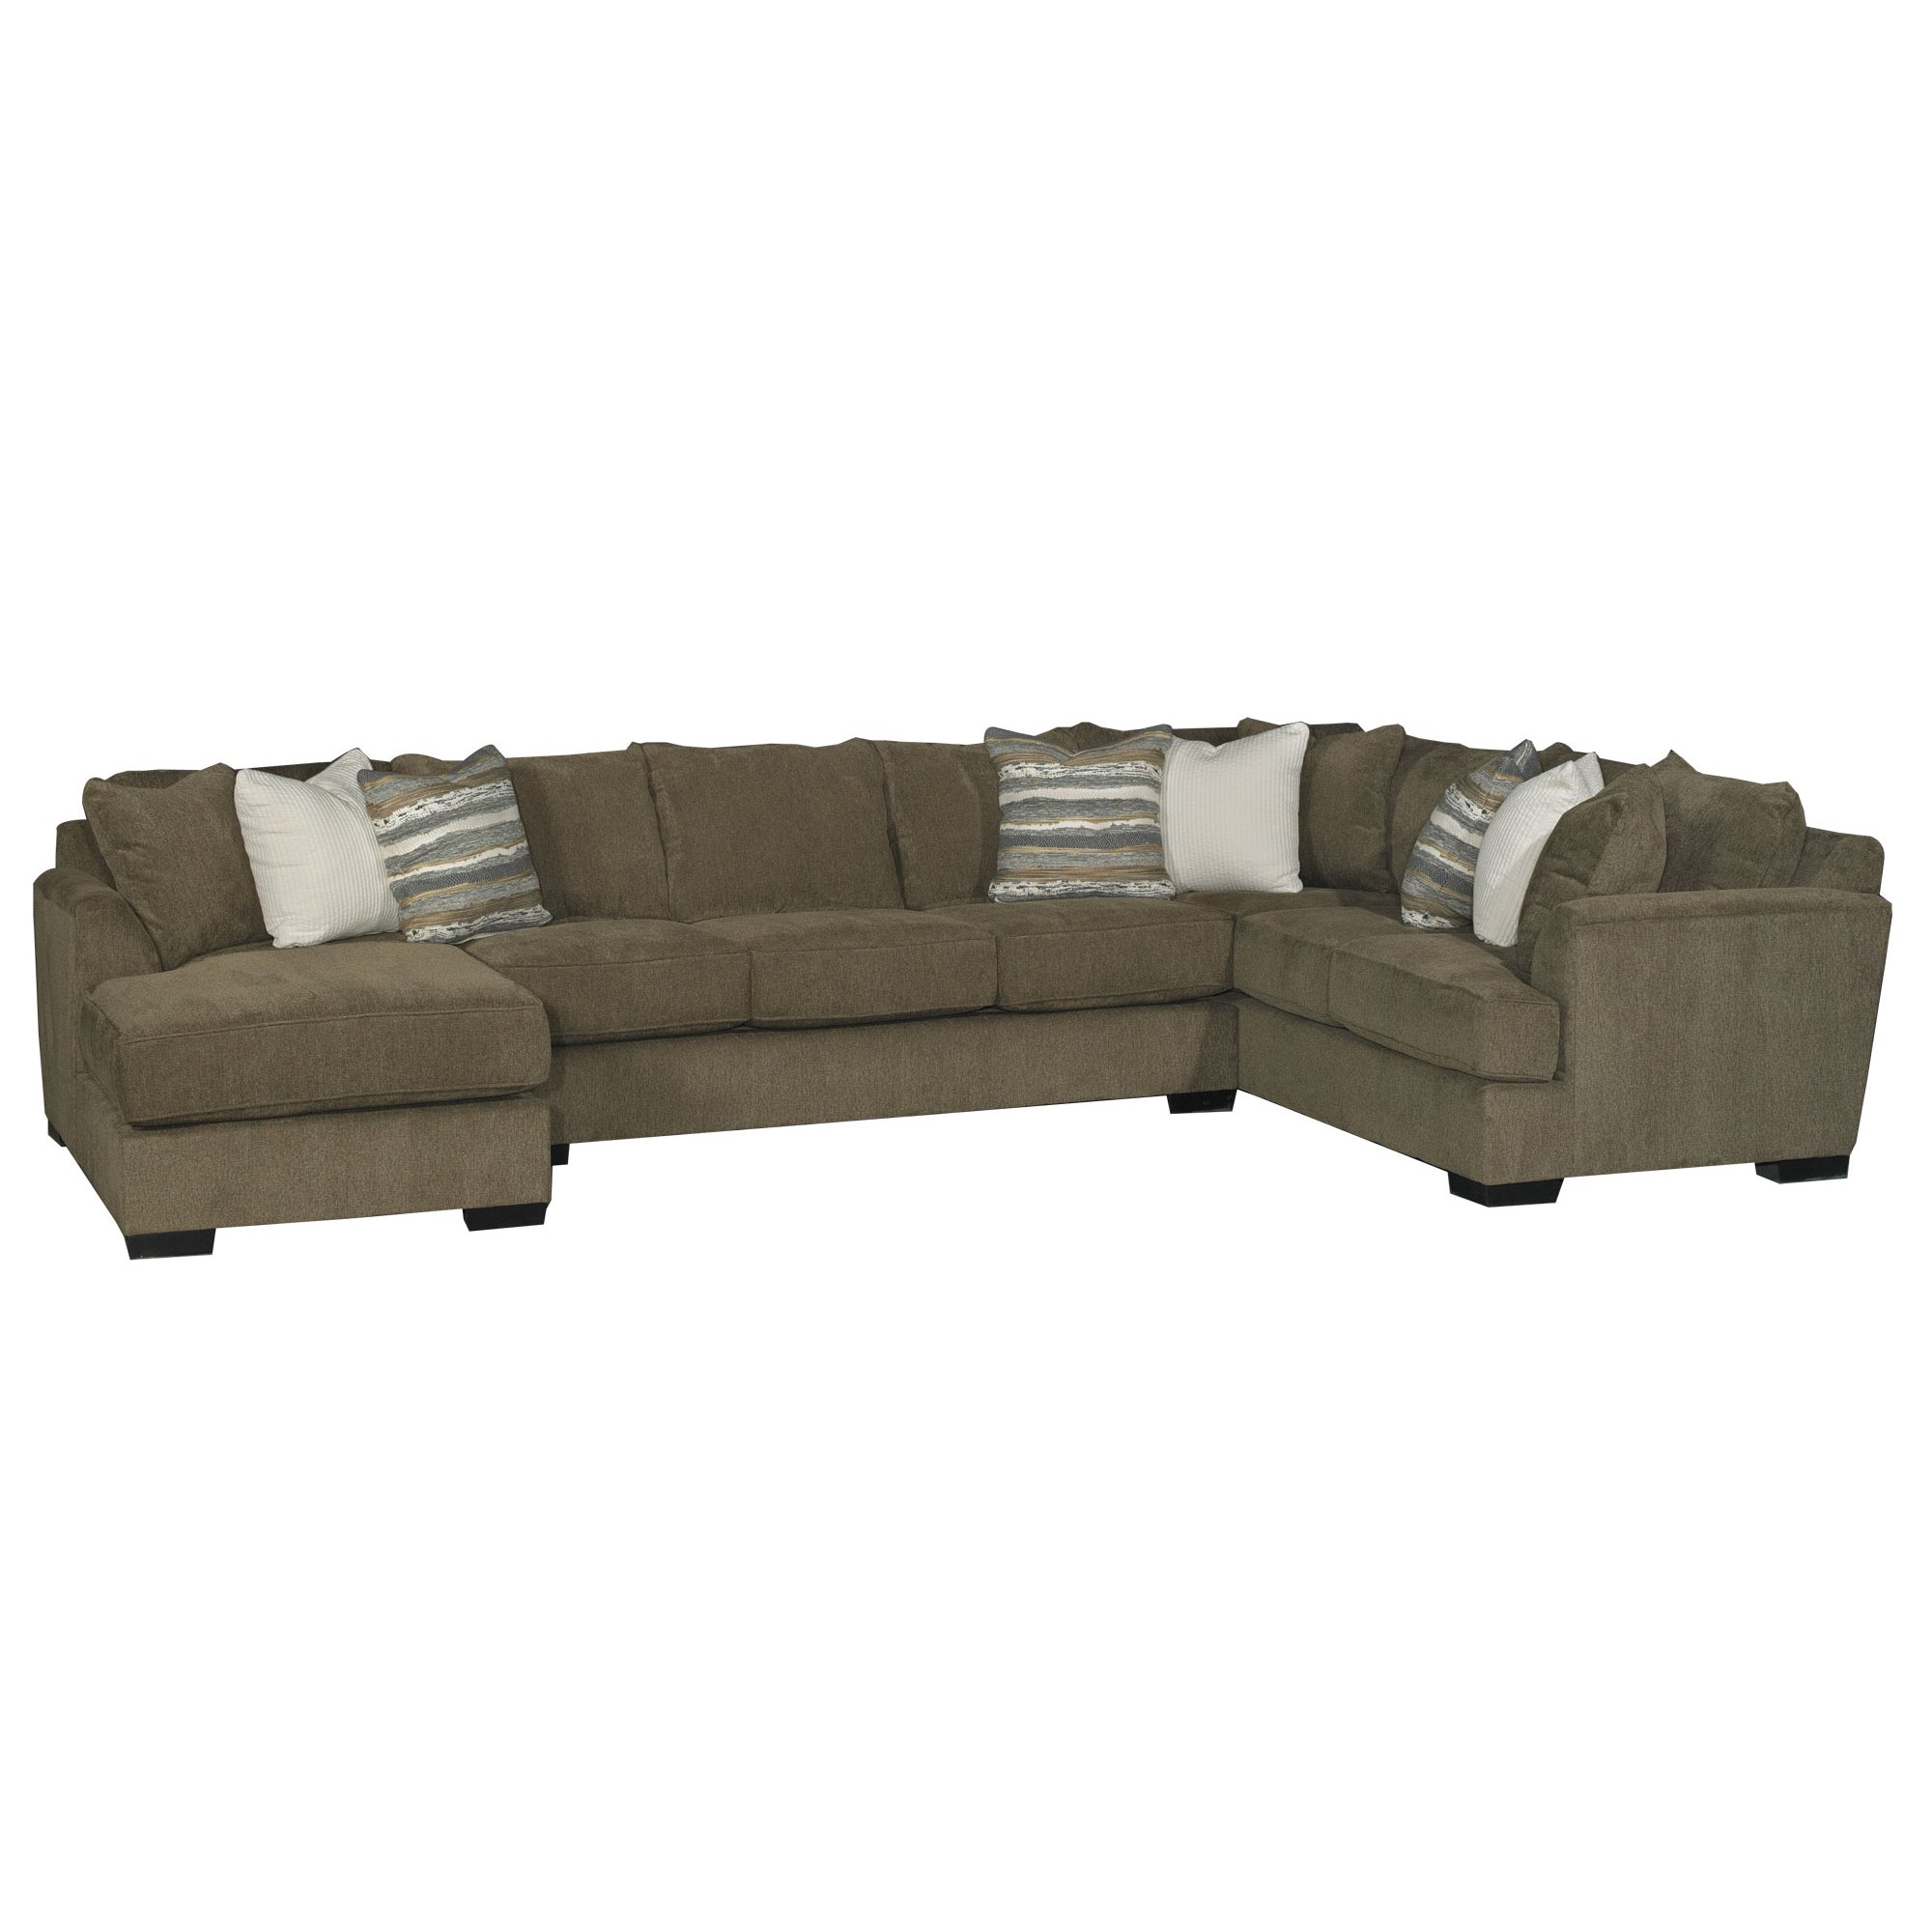 Brown 3 Piece Sectional Sofa with LAF Chaise - Tranquility